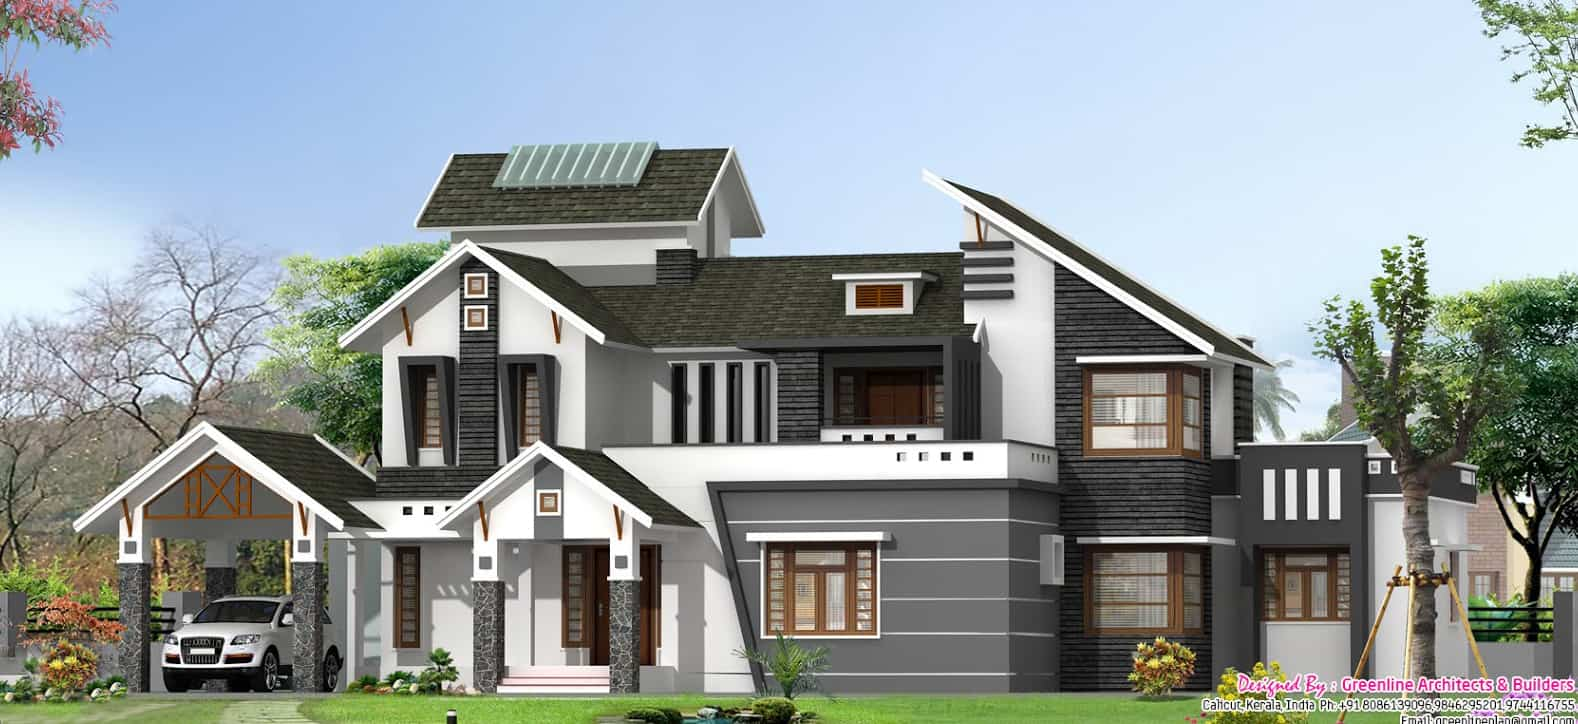 Unique house designs keralahouseplanner Latest home design